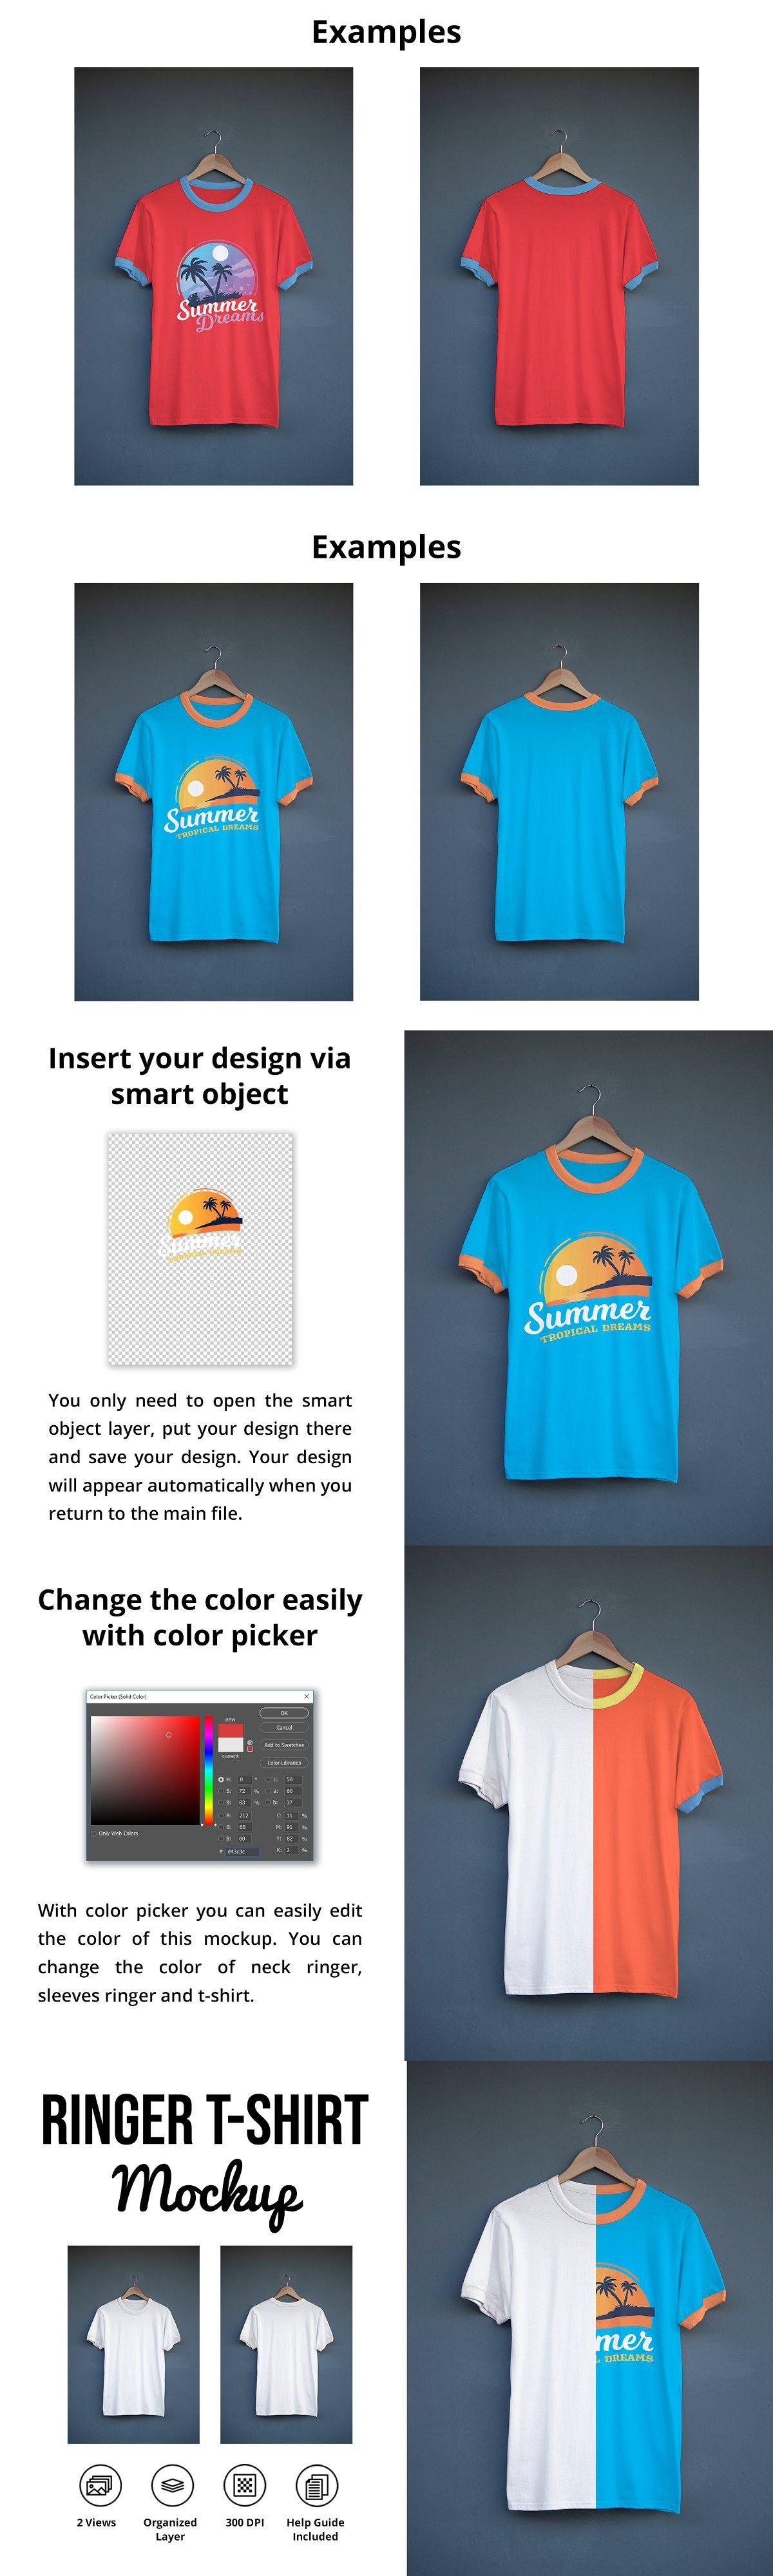 Download Ringer T Shirt Mockup Shirt Mockup Tshirt Mockup Colorful Shirts